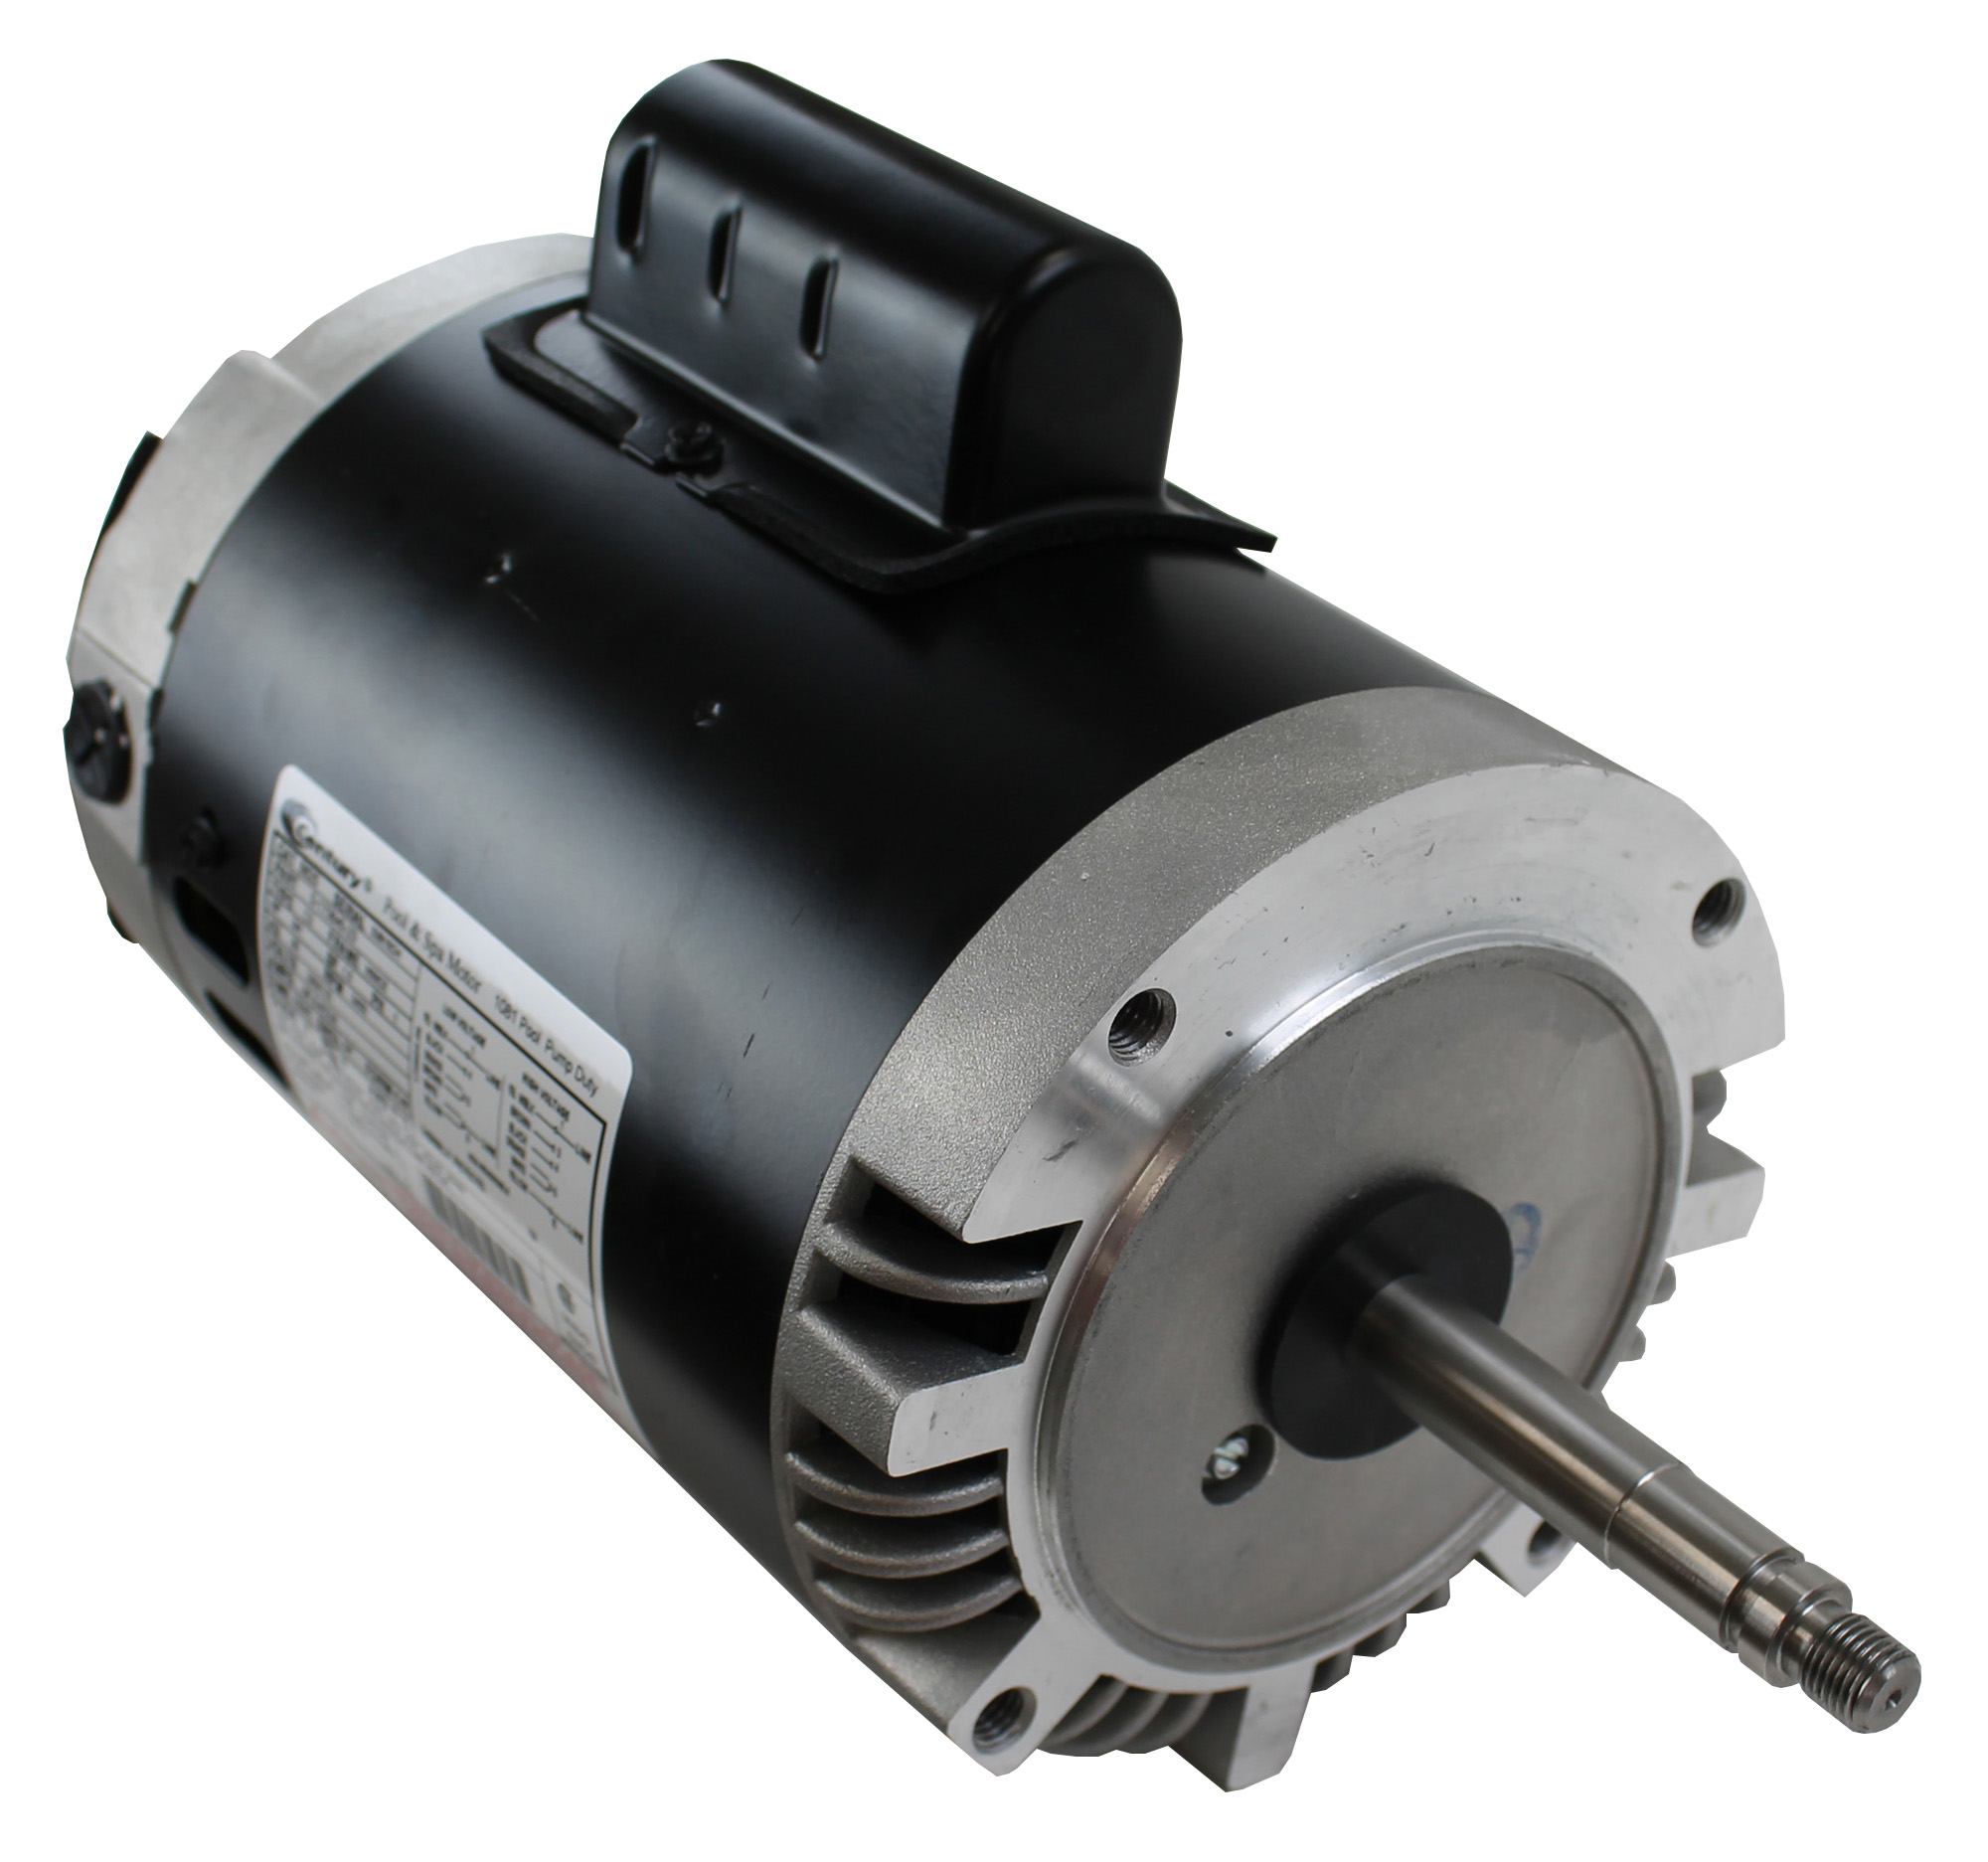 A.O. Smith Century B625 3/4HP 3450RPM 115/230V Polaris PB460 Booster Pump Motor